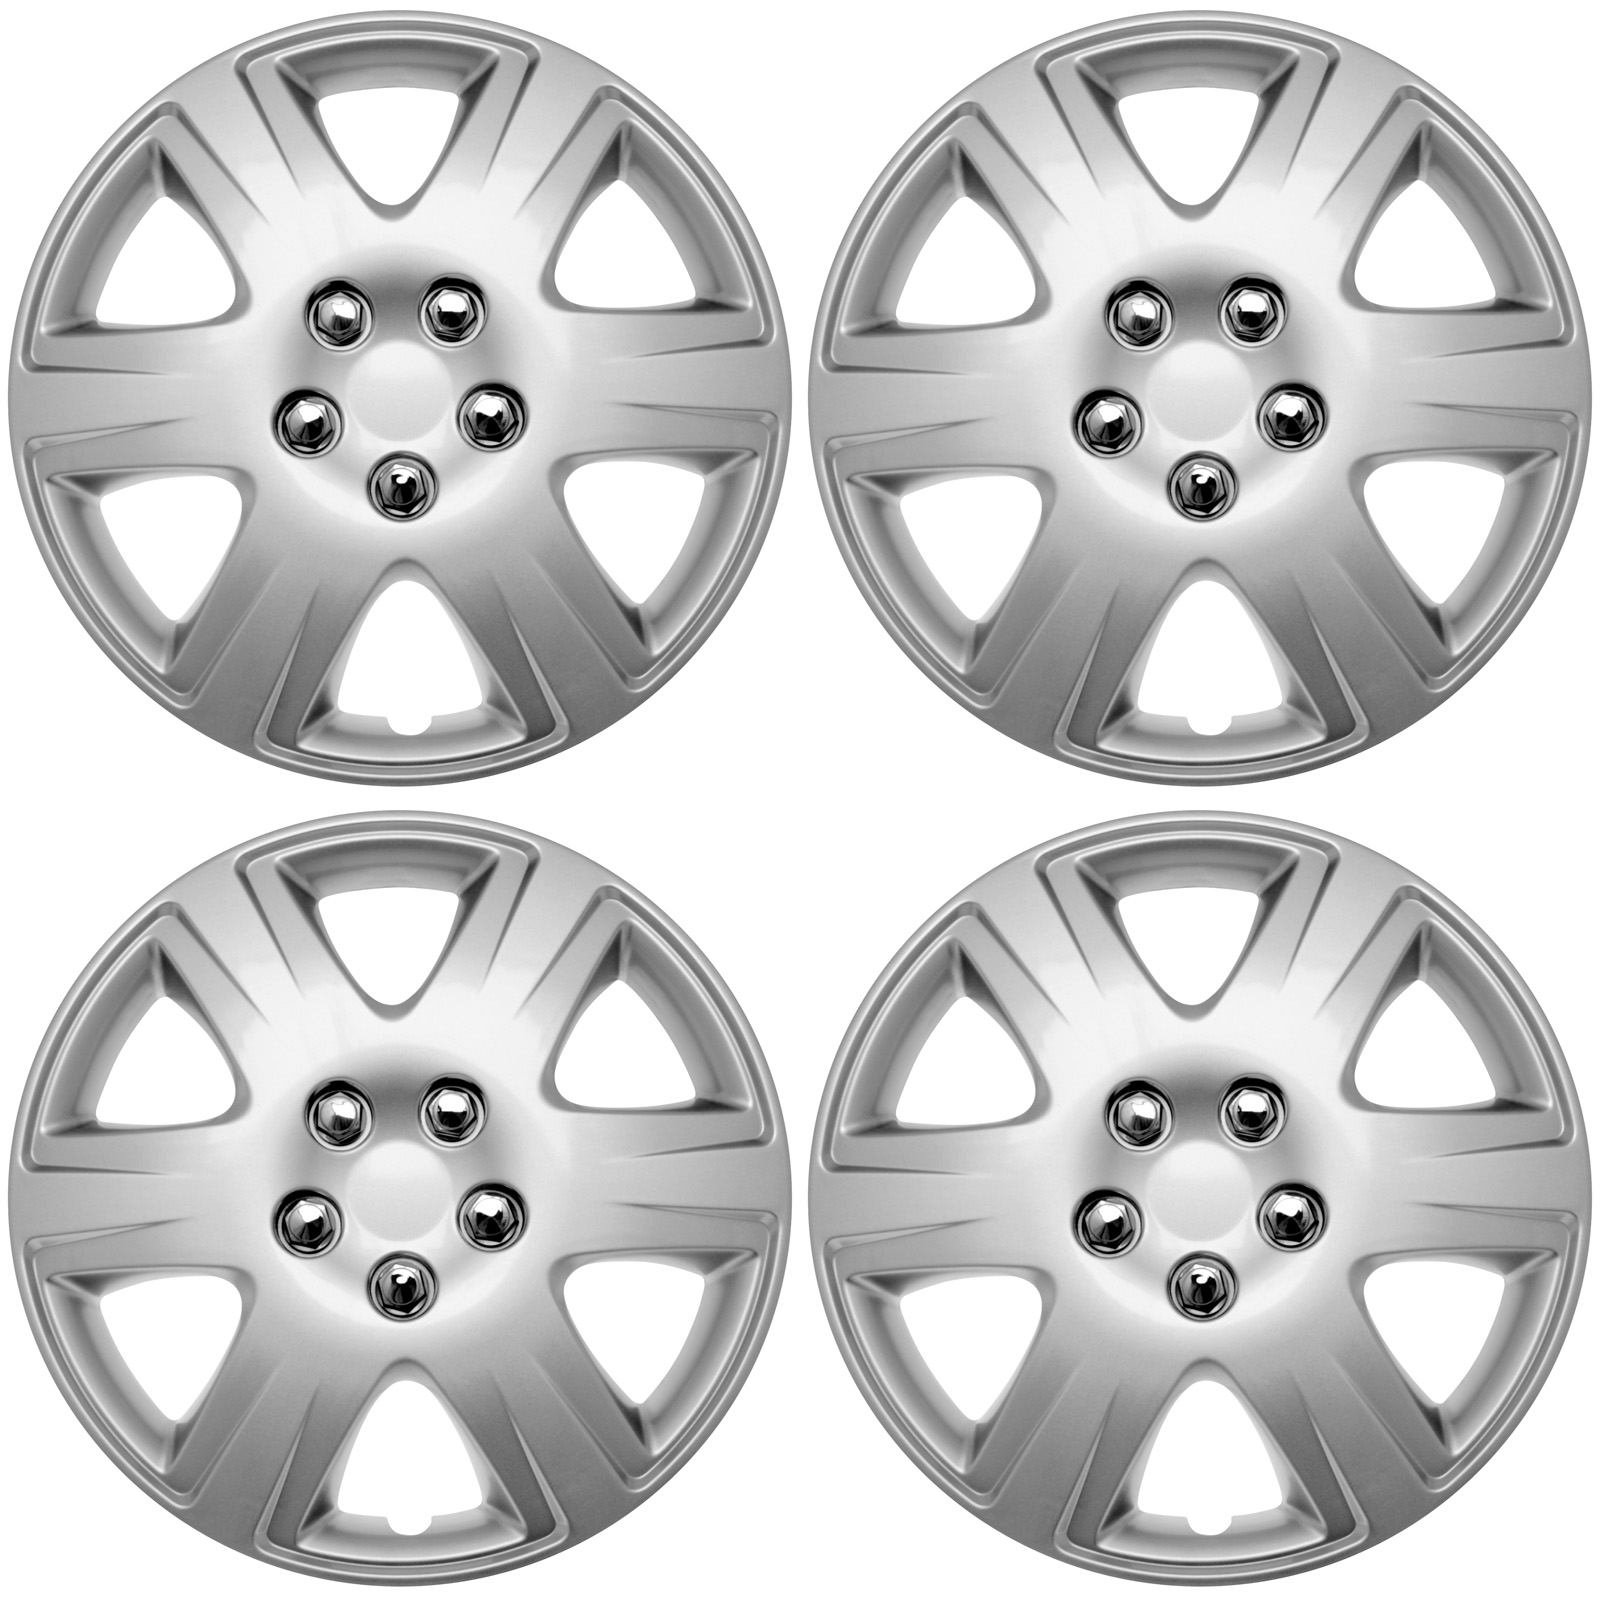 """Cover Trend (Set of 4) SILVER Aftermarket Hub Caps fits Toyota Corolla, 15"""" Full Wheel Covers (STEEL CLIPS)  for a Tight & Secure Fit"""